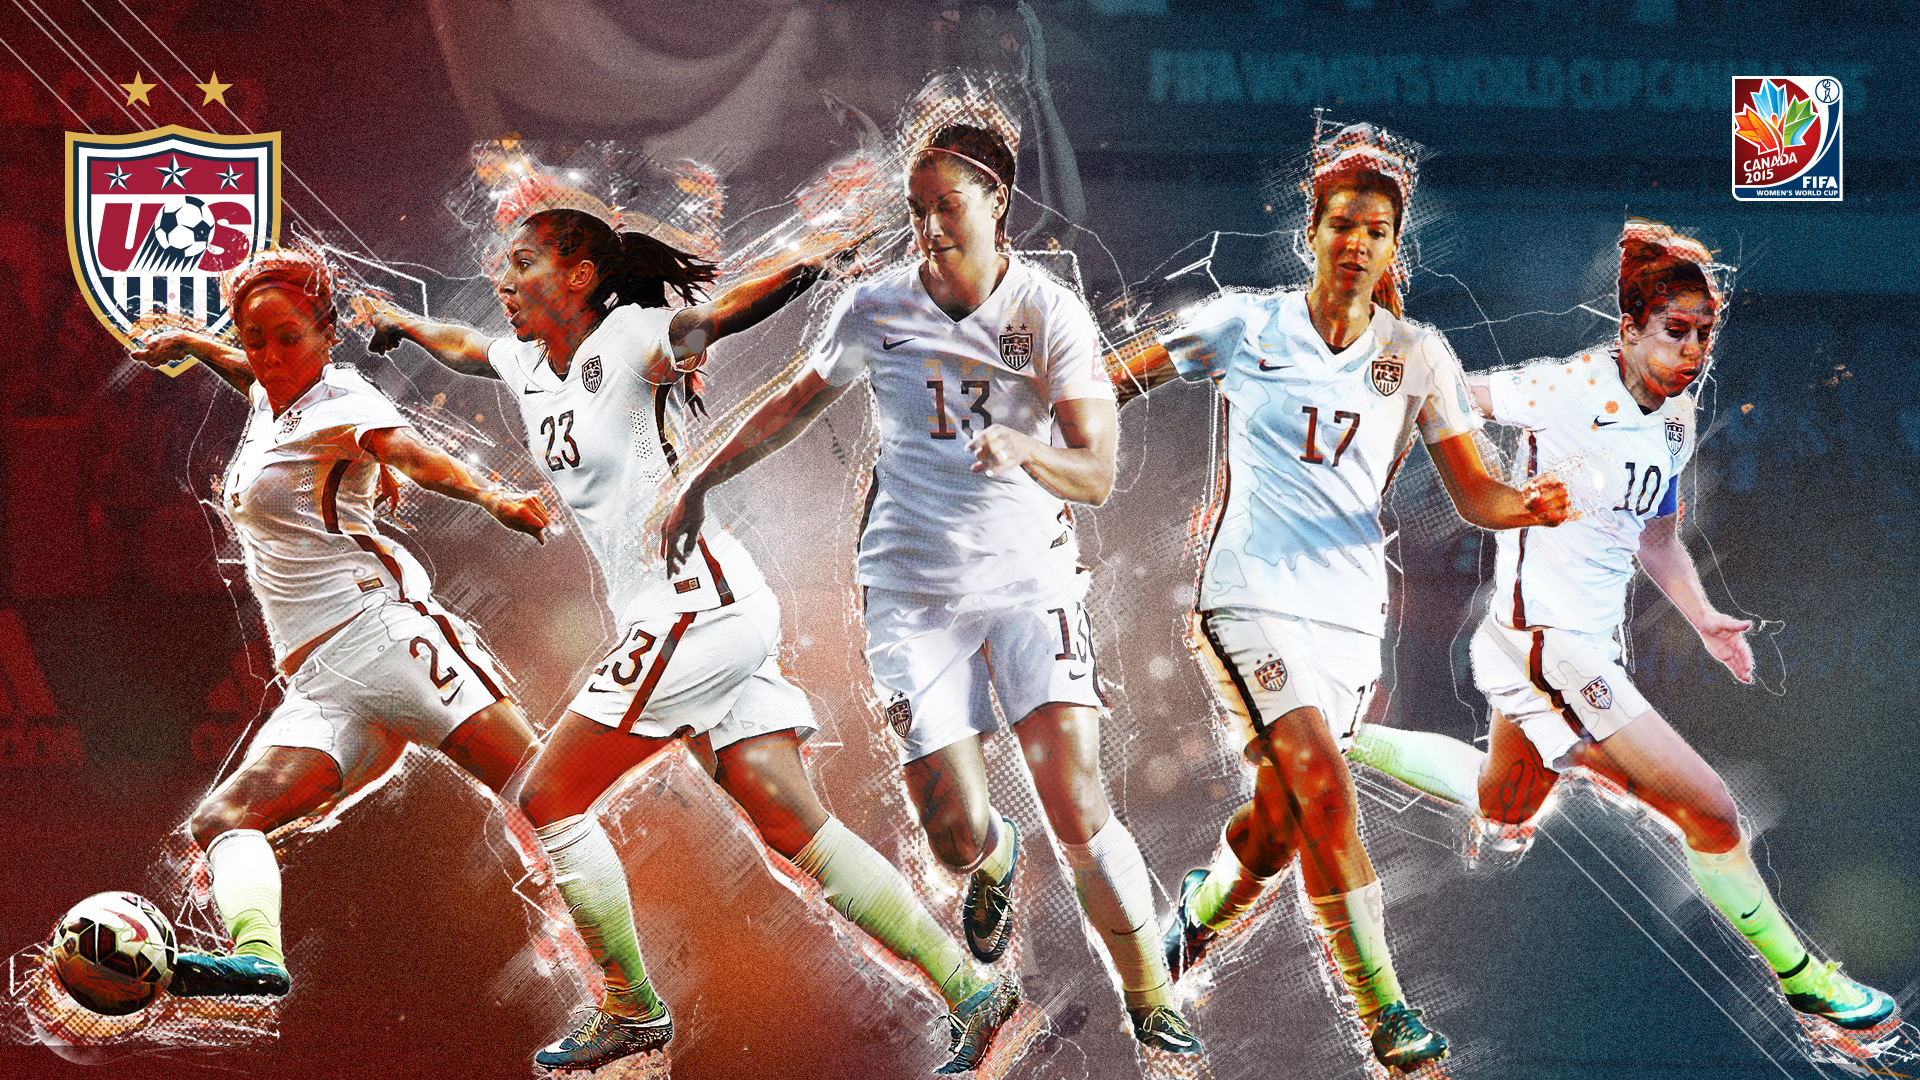 Women's World Cup 2015 Final, USA vs Japan: Live updates as USA wins first title since '99 ...